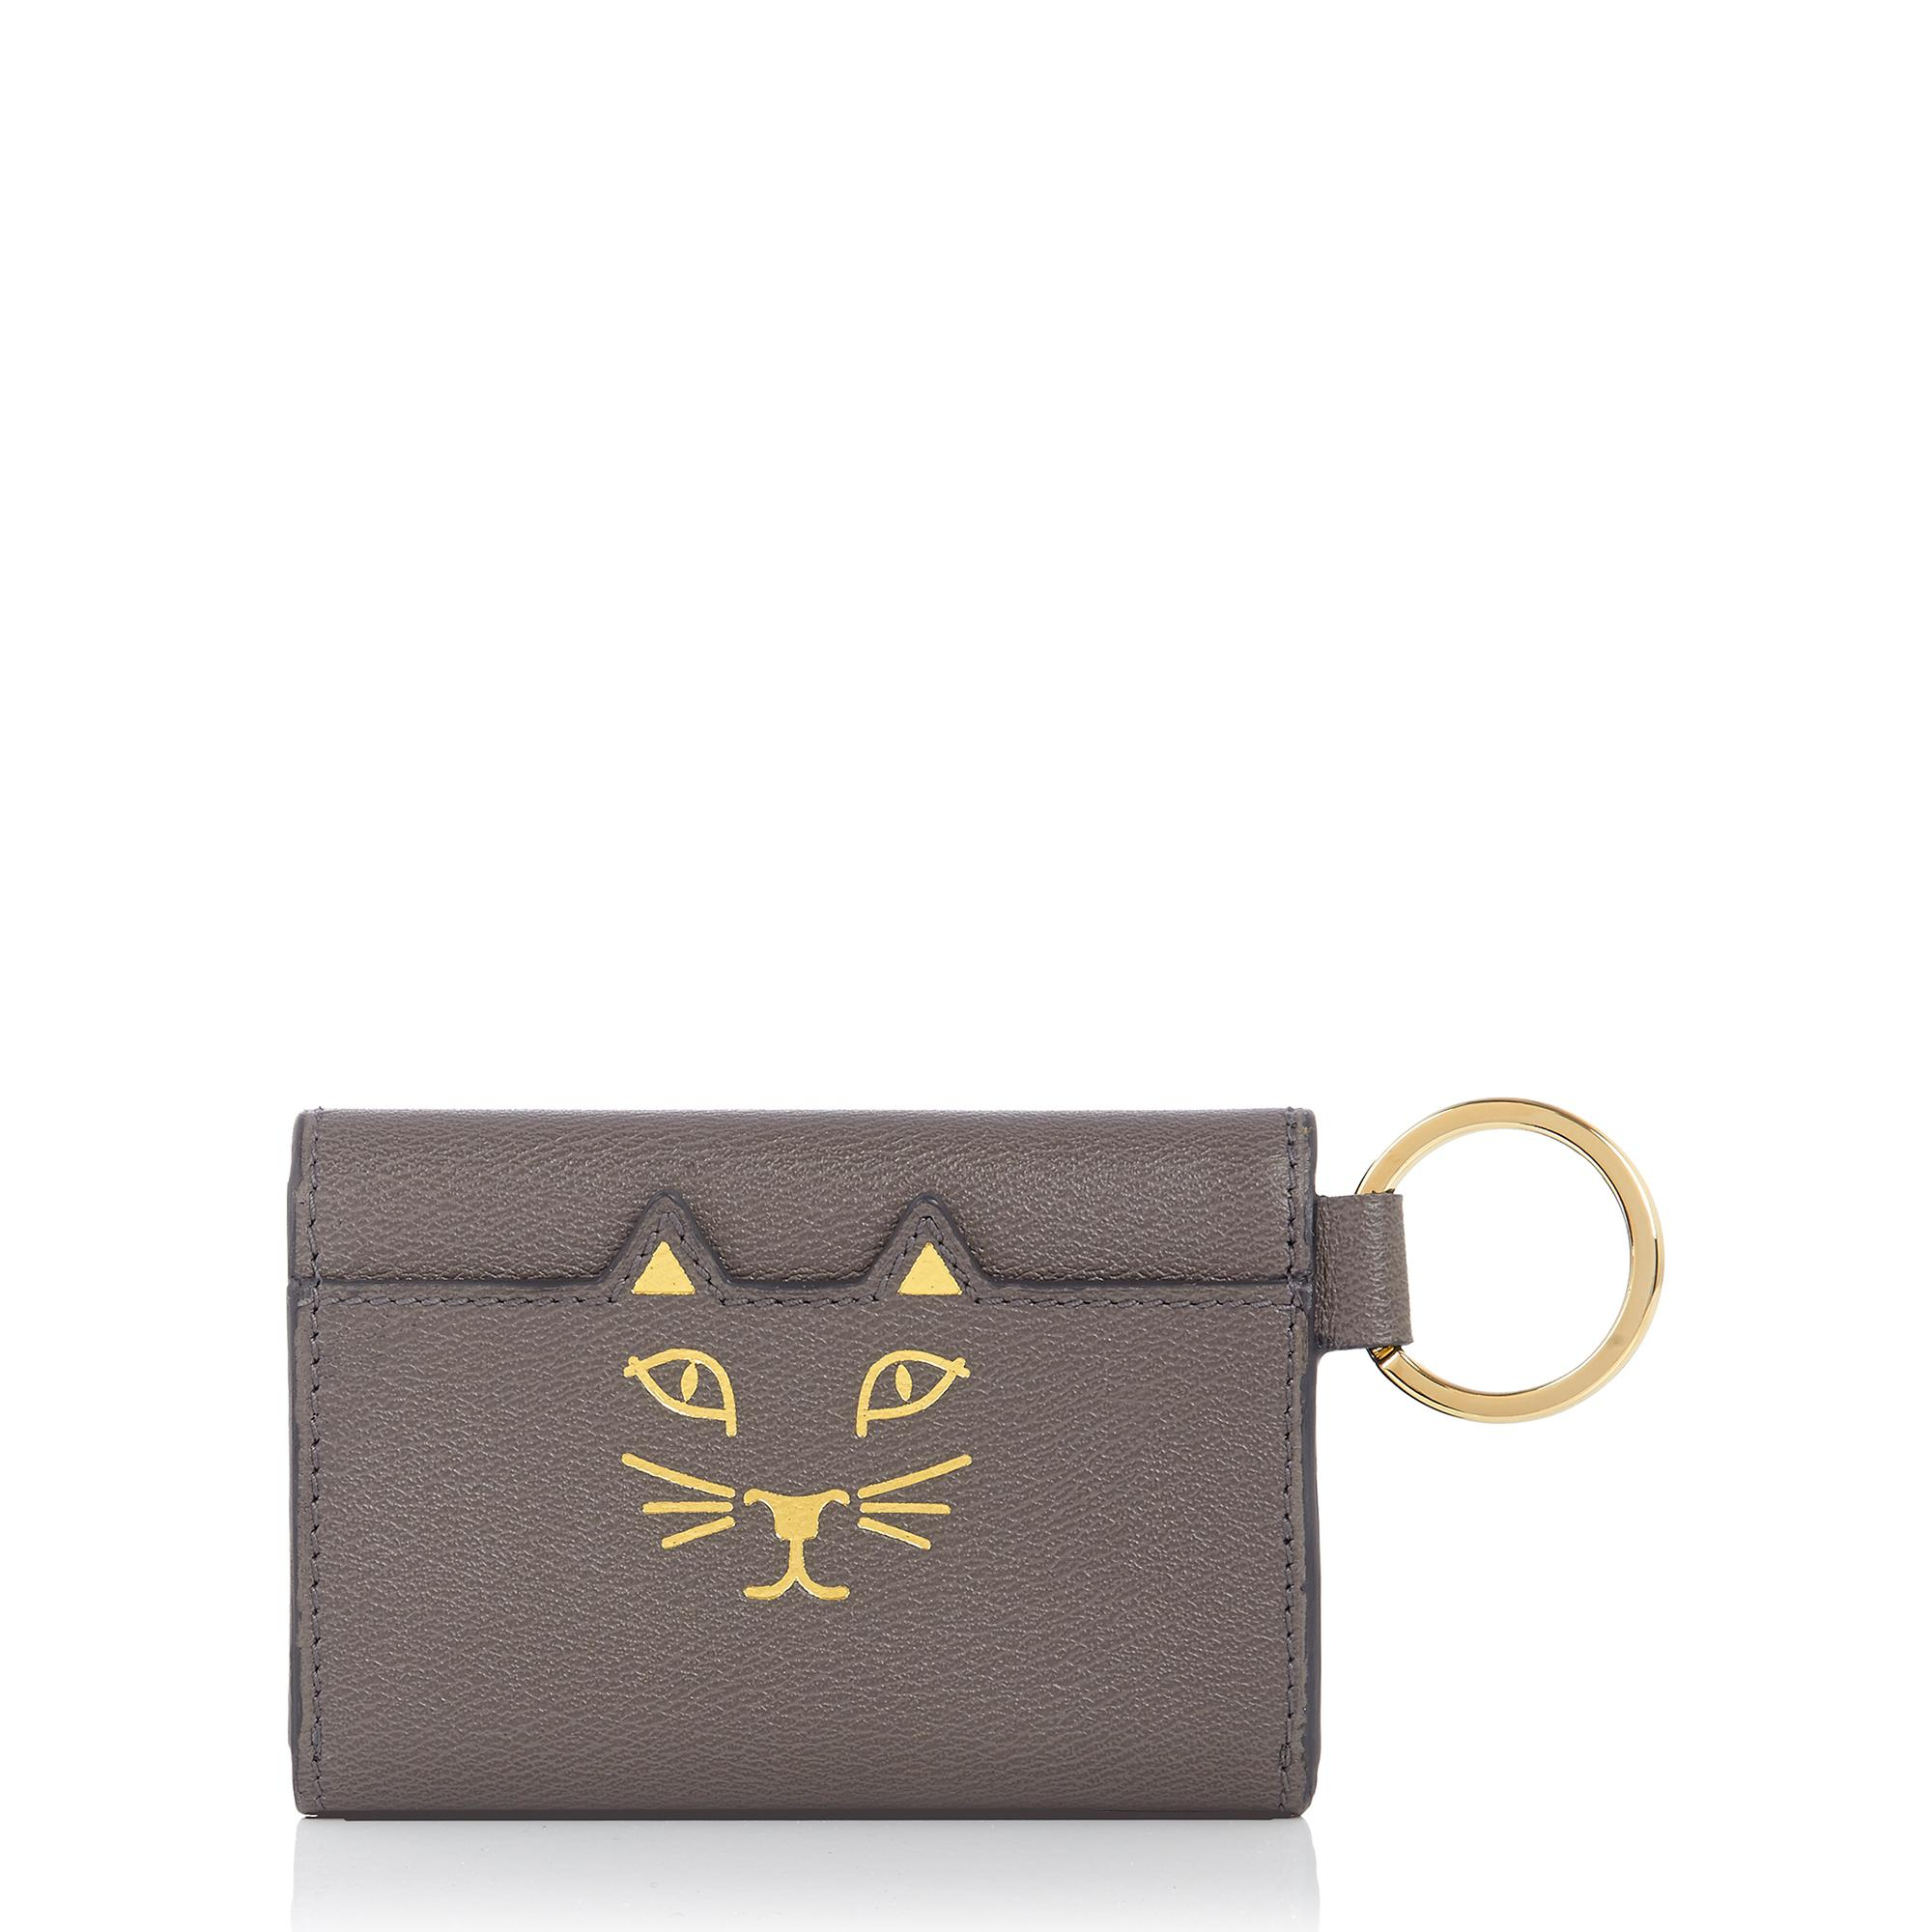 charlotte olympia feline keychain purse in gray grey lyst. Black Bedroom Furniture Sets. Home Design Ideas